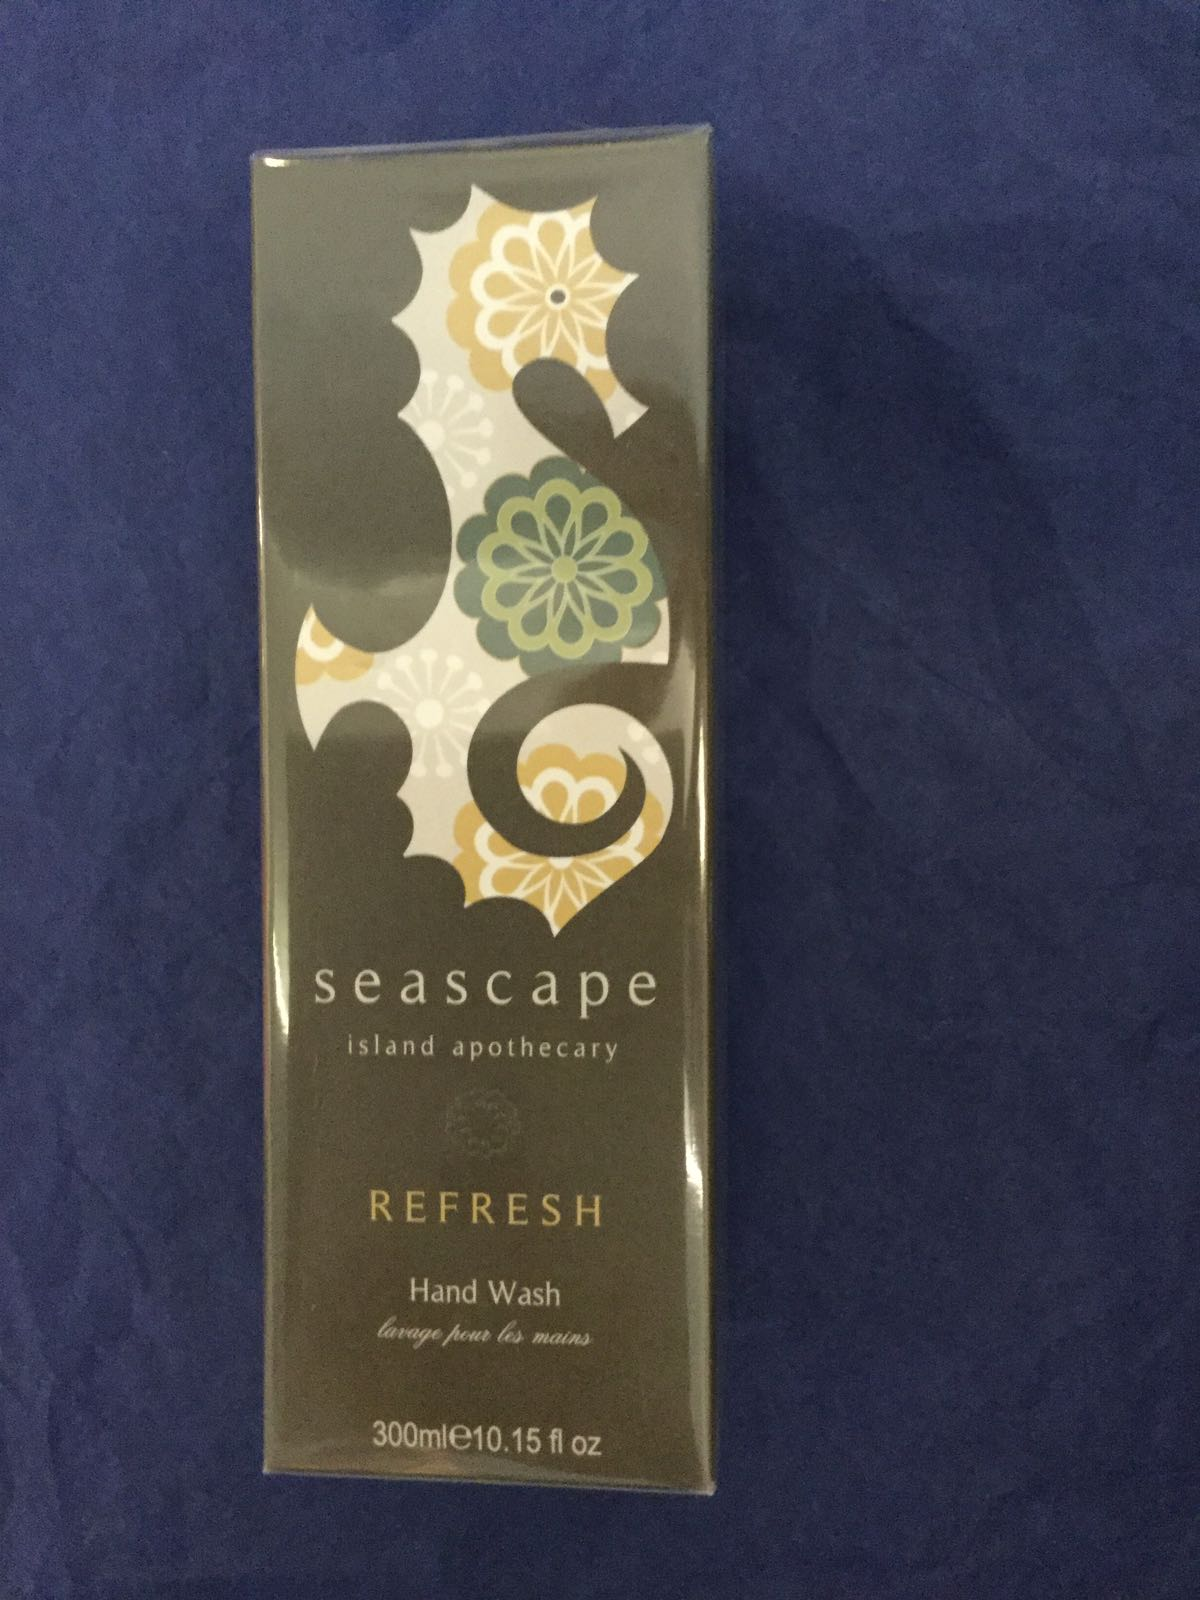 Seascape - Refresh hand Wash